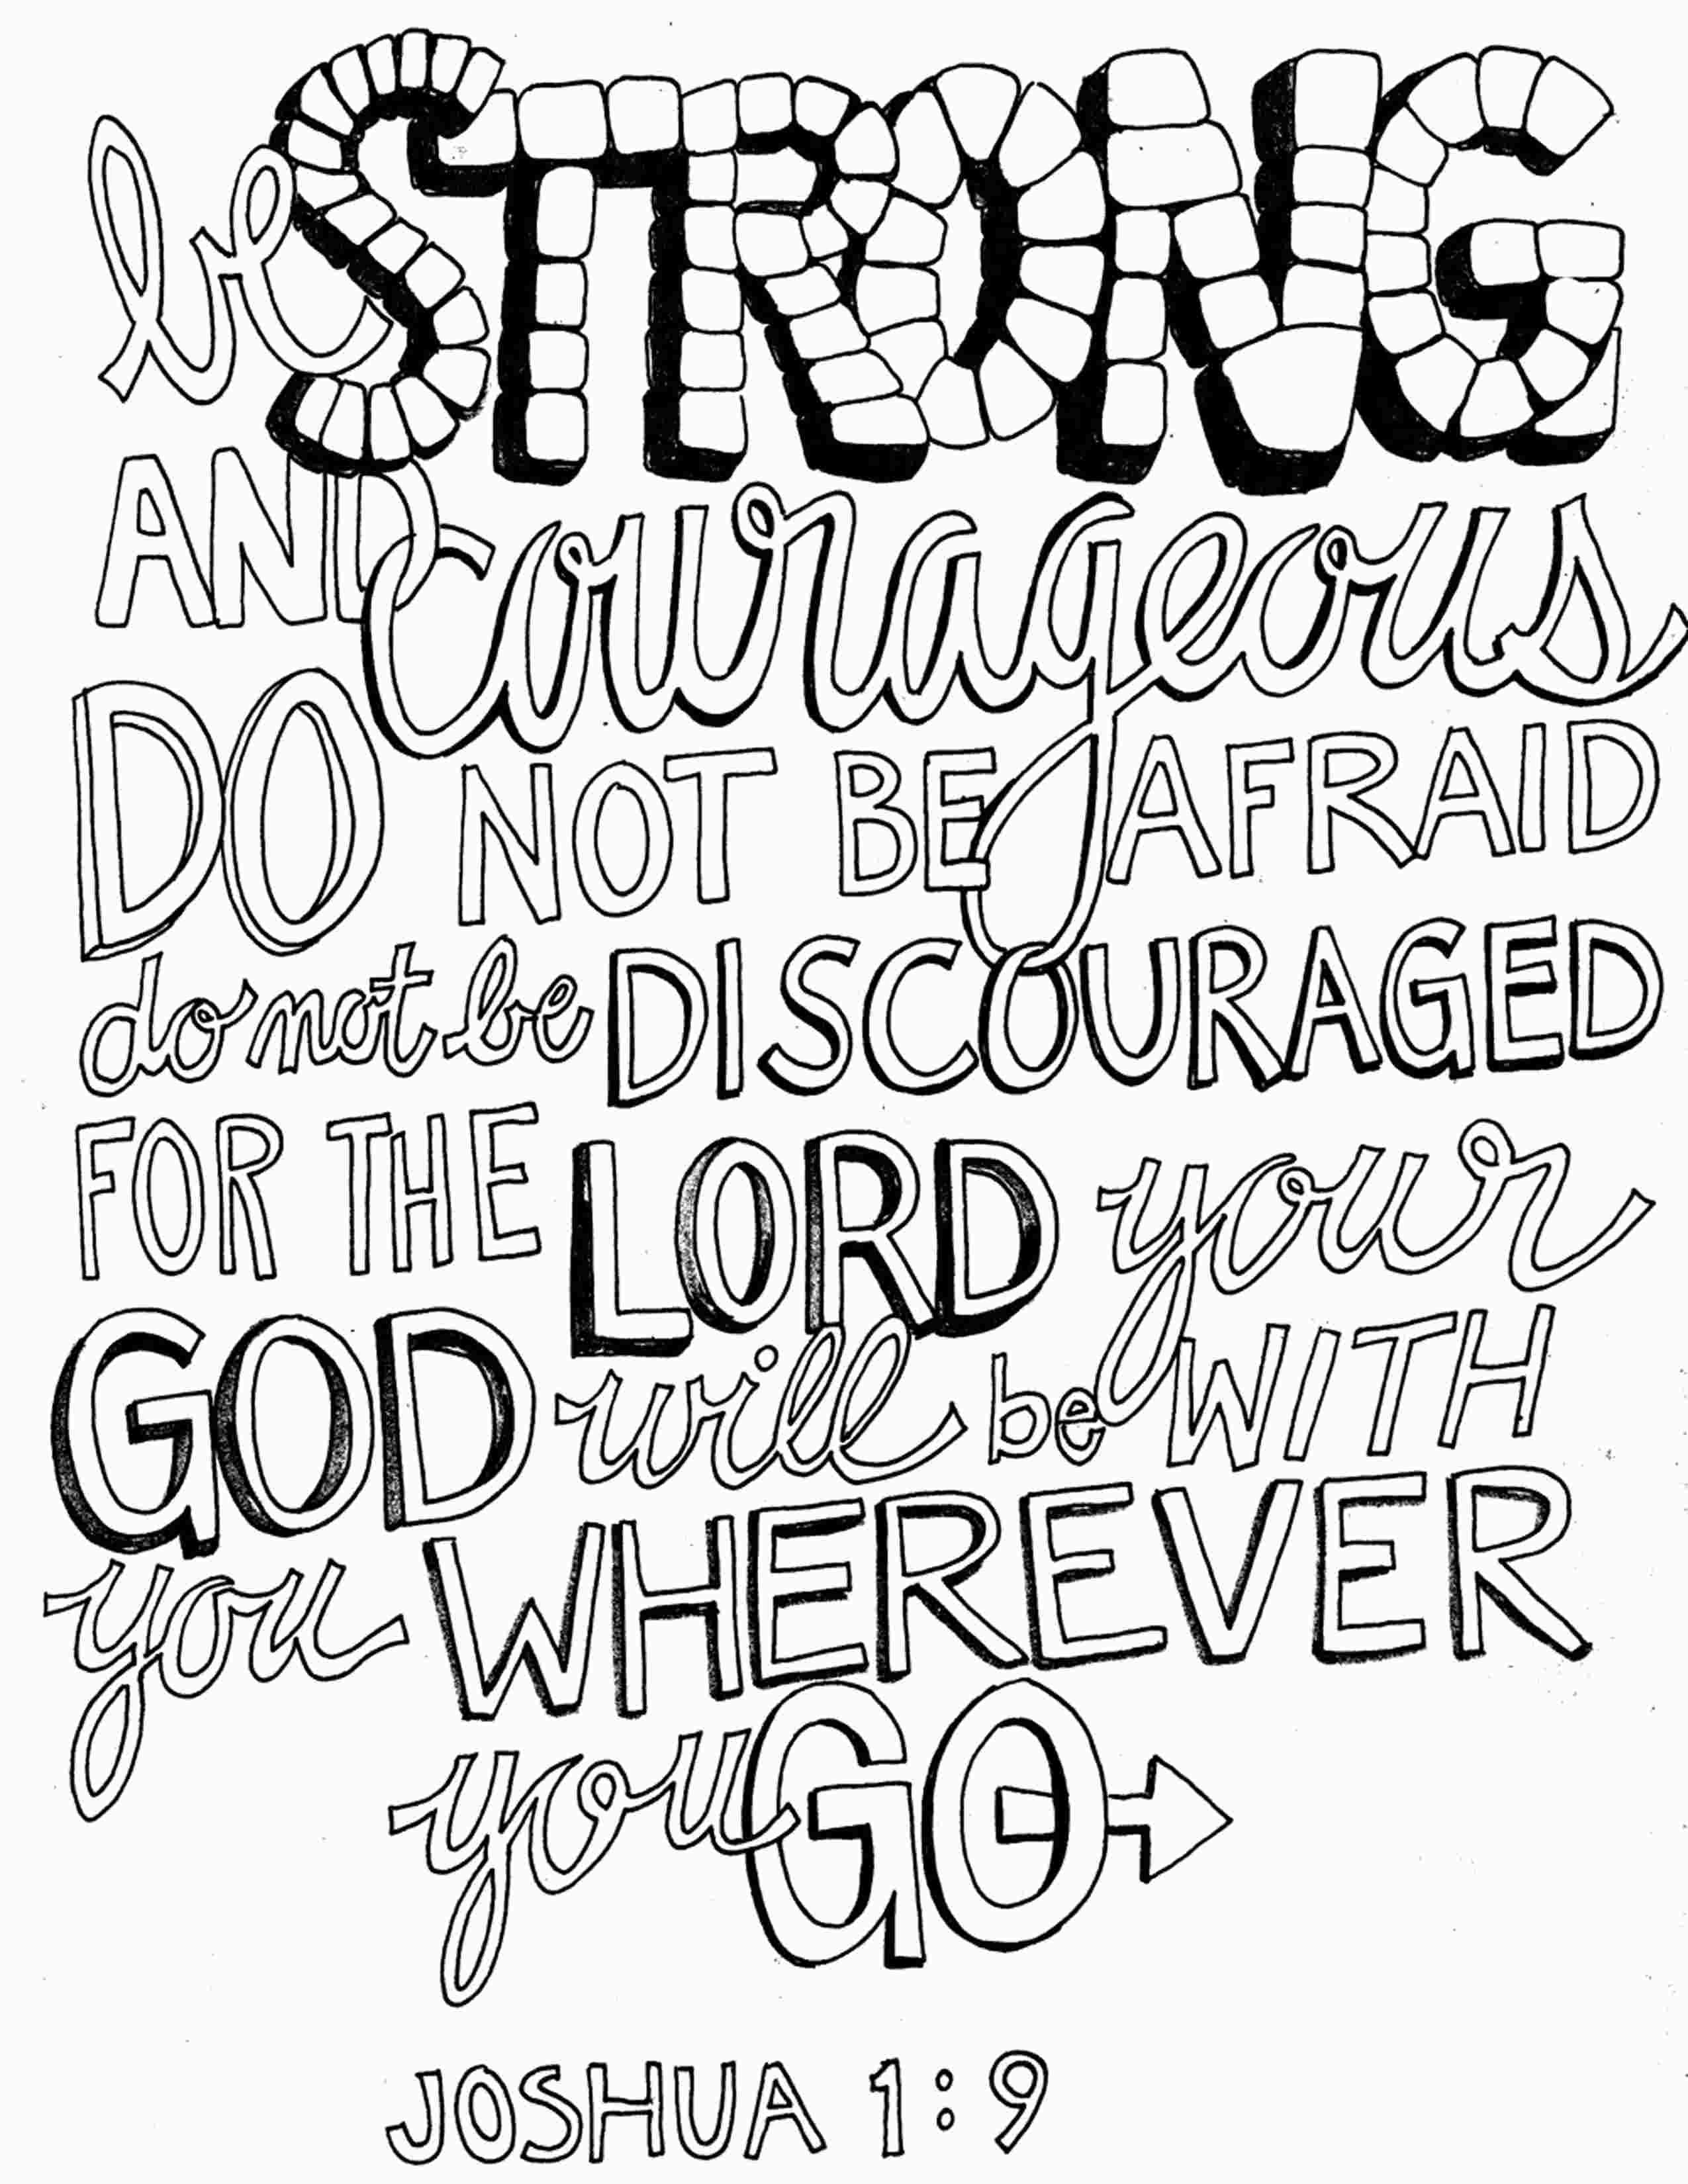 Joshua 1 9 Coloring Pages Bible Verse Coloring Page Joshua